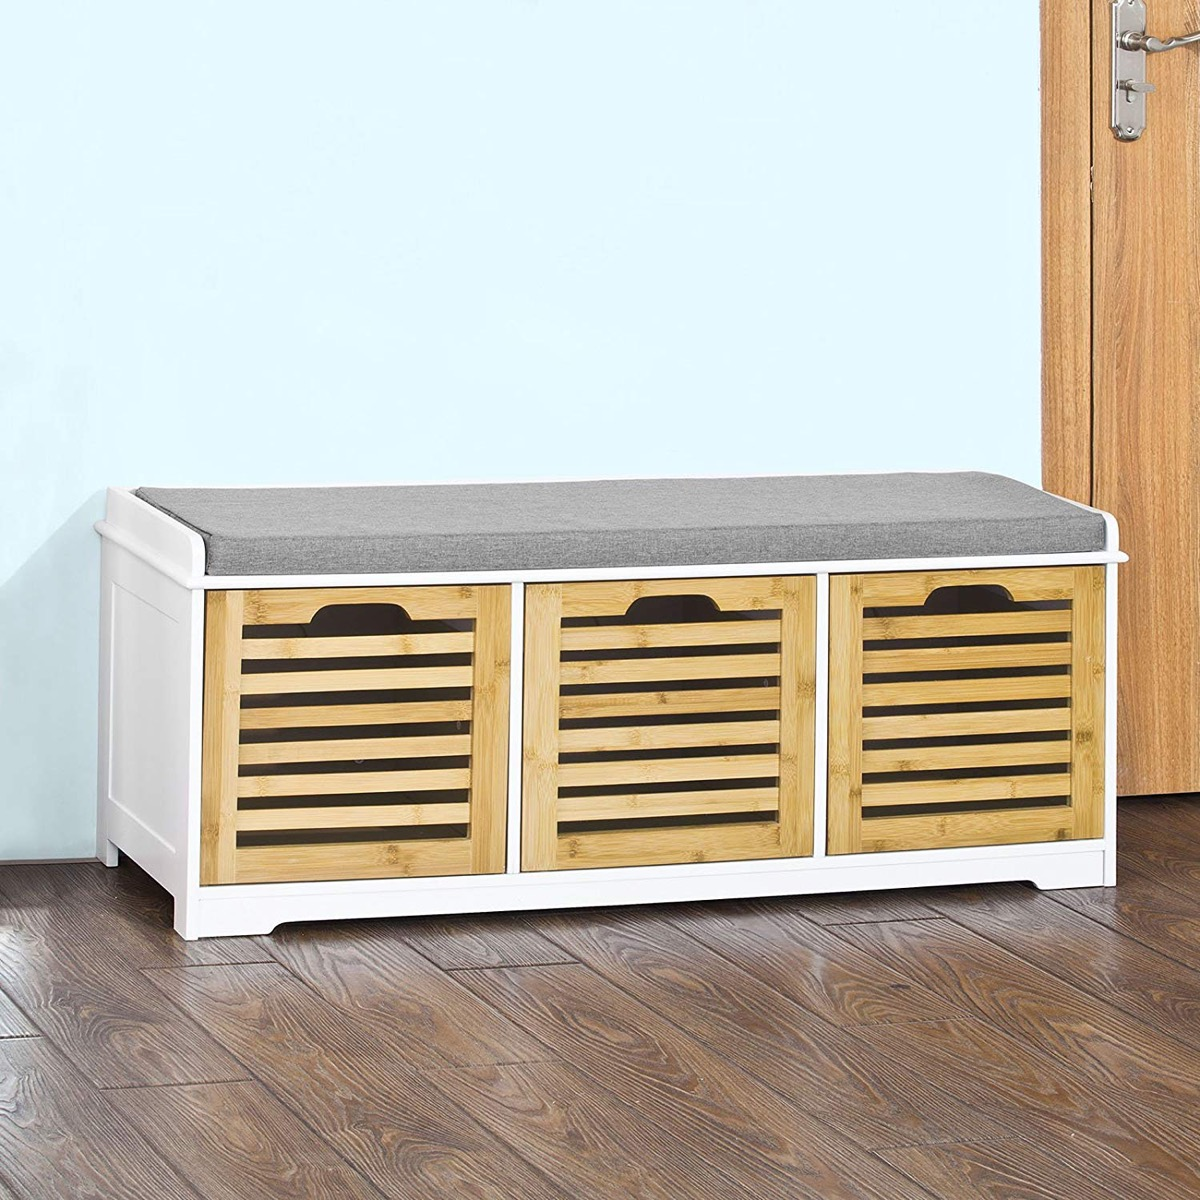 entry-bench-with-storage-drawers-with-white-finish-wood-slats-and-grey-cushion